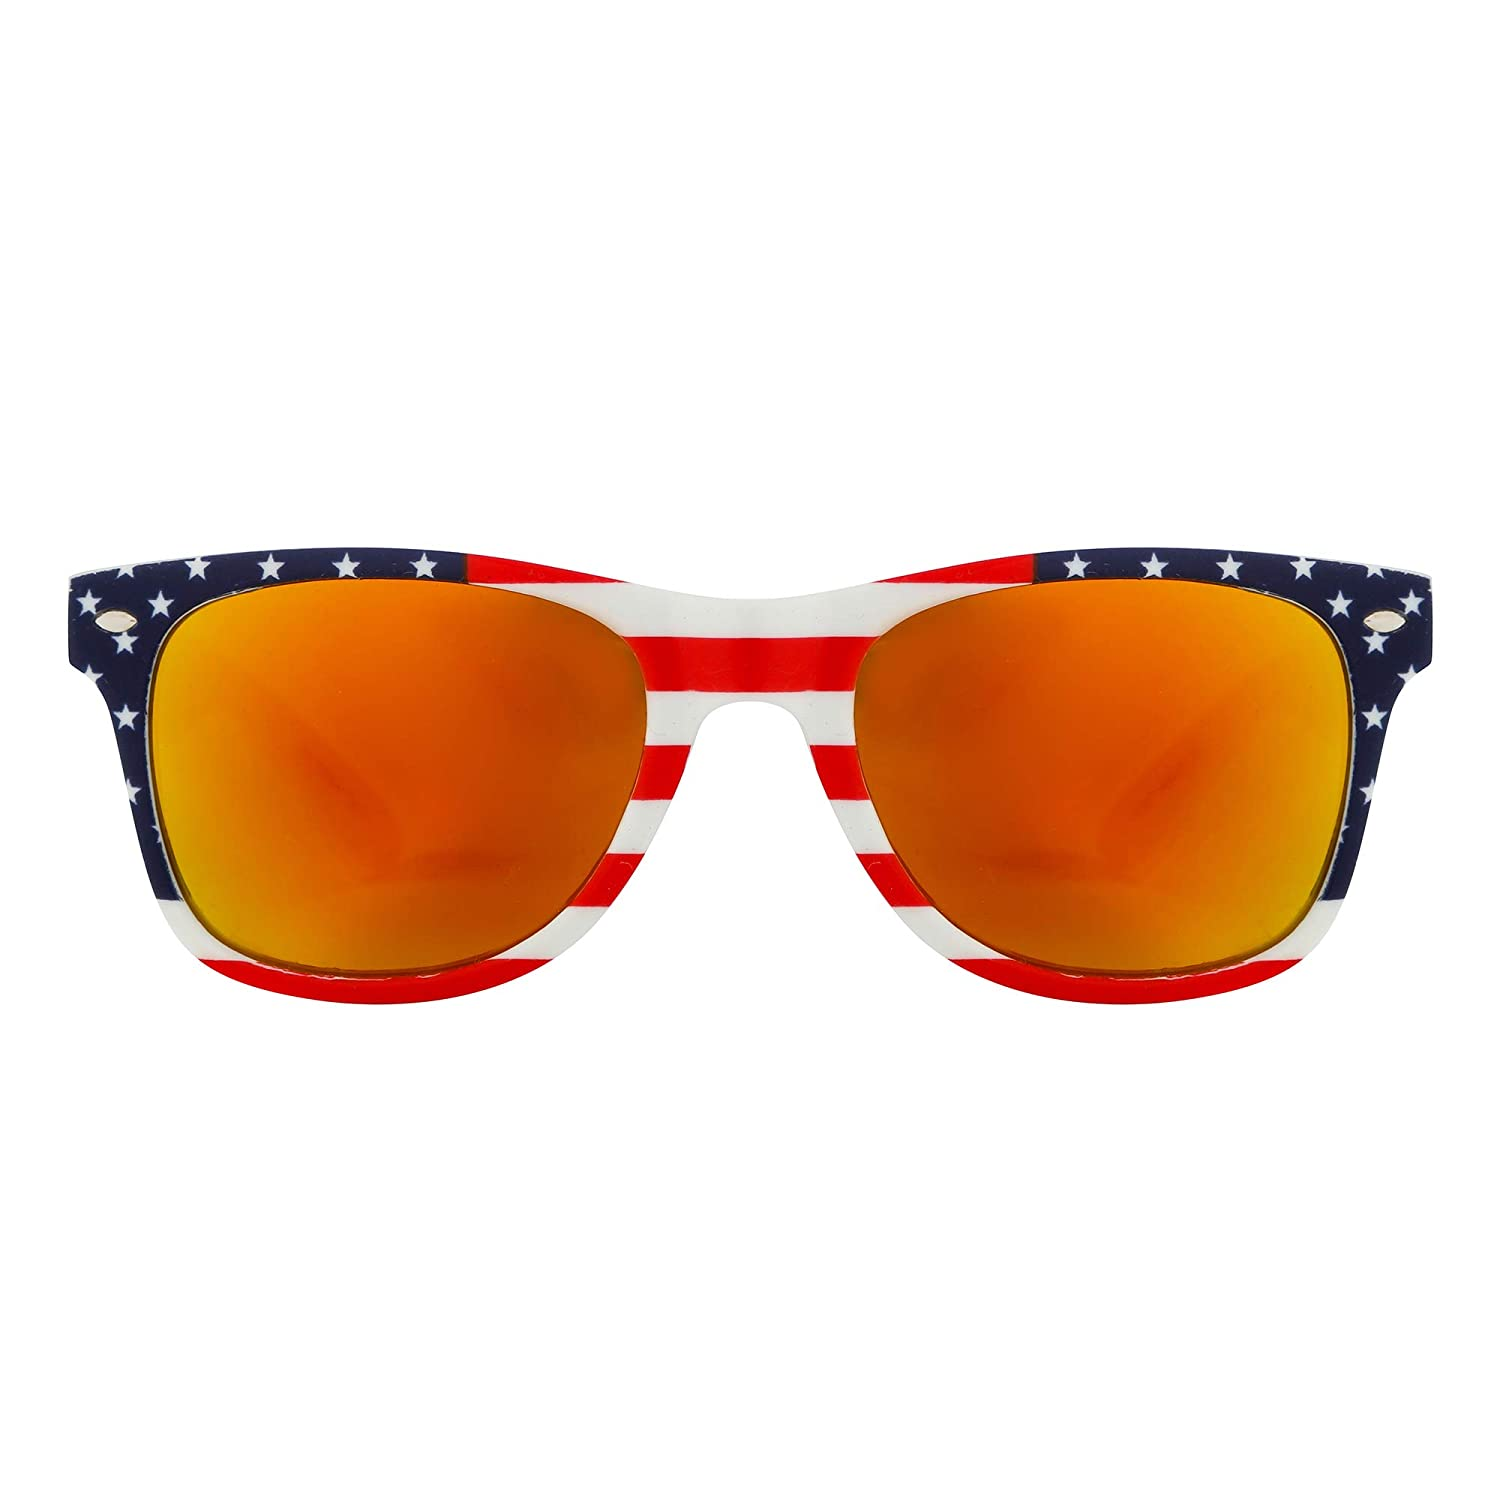 1beb2f7714c Amazon.com  USA Flag Sunglasses Shades Mirror Finish Stars   Stripes  Classic Style With UV400 Protection Men Women Patriots  Clothing